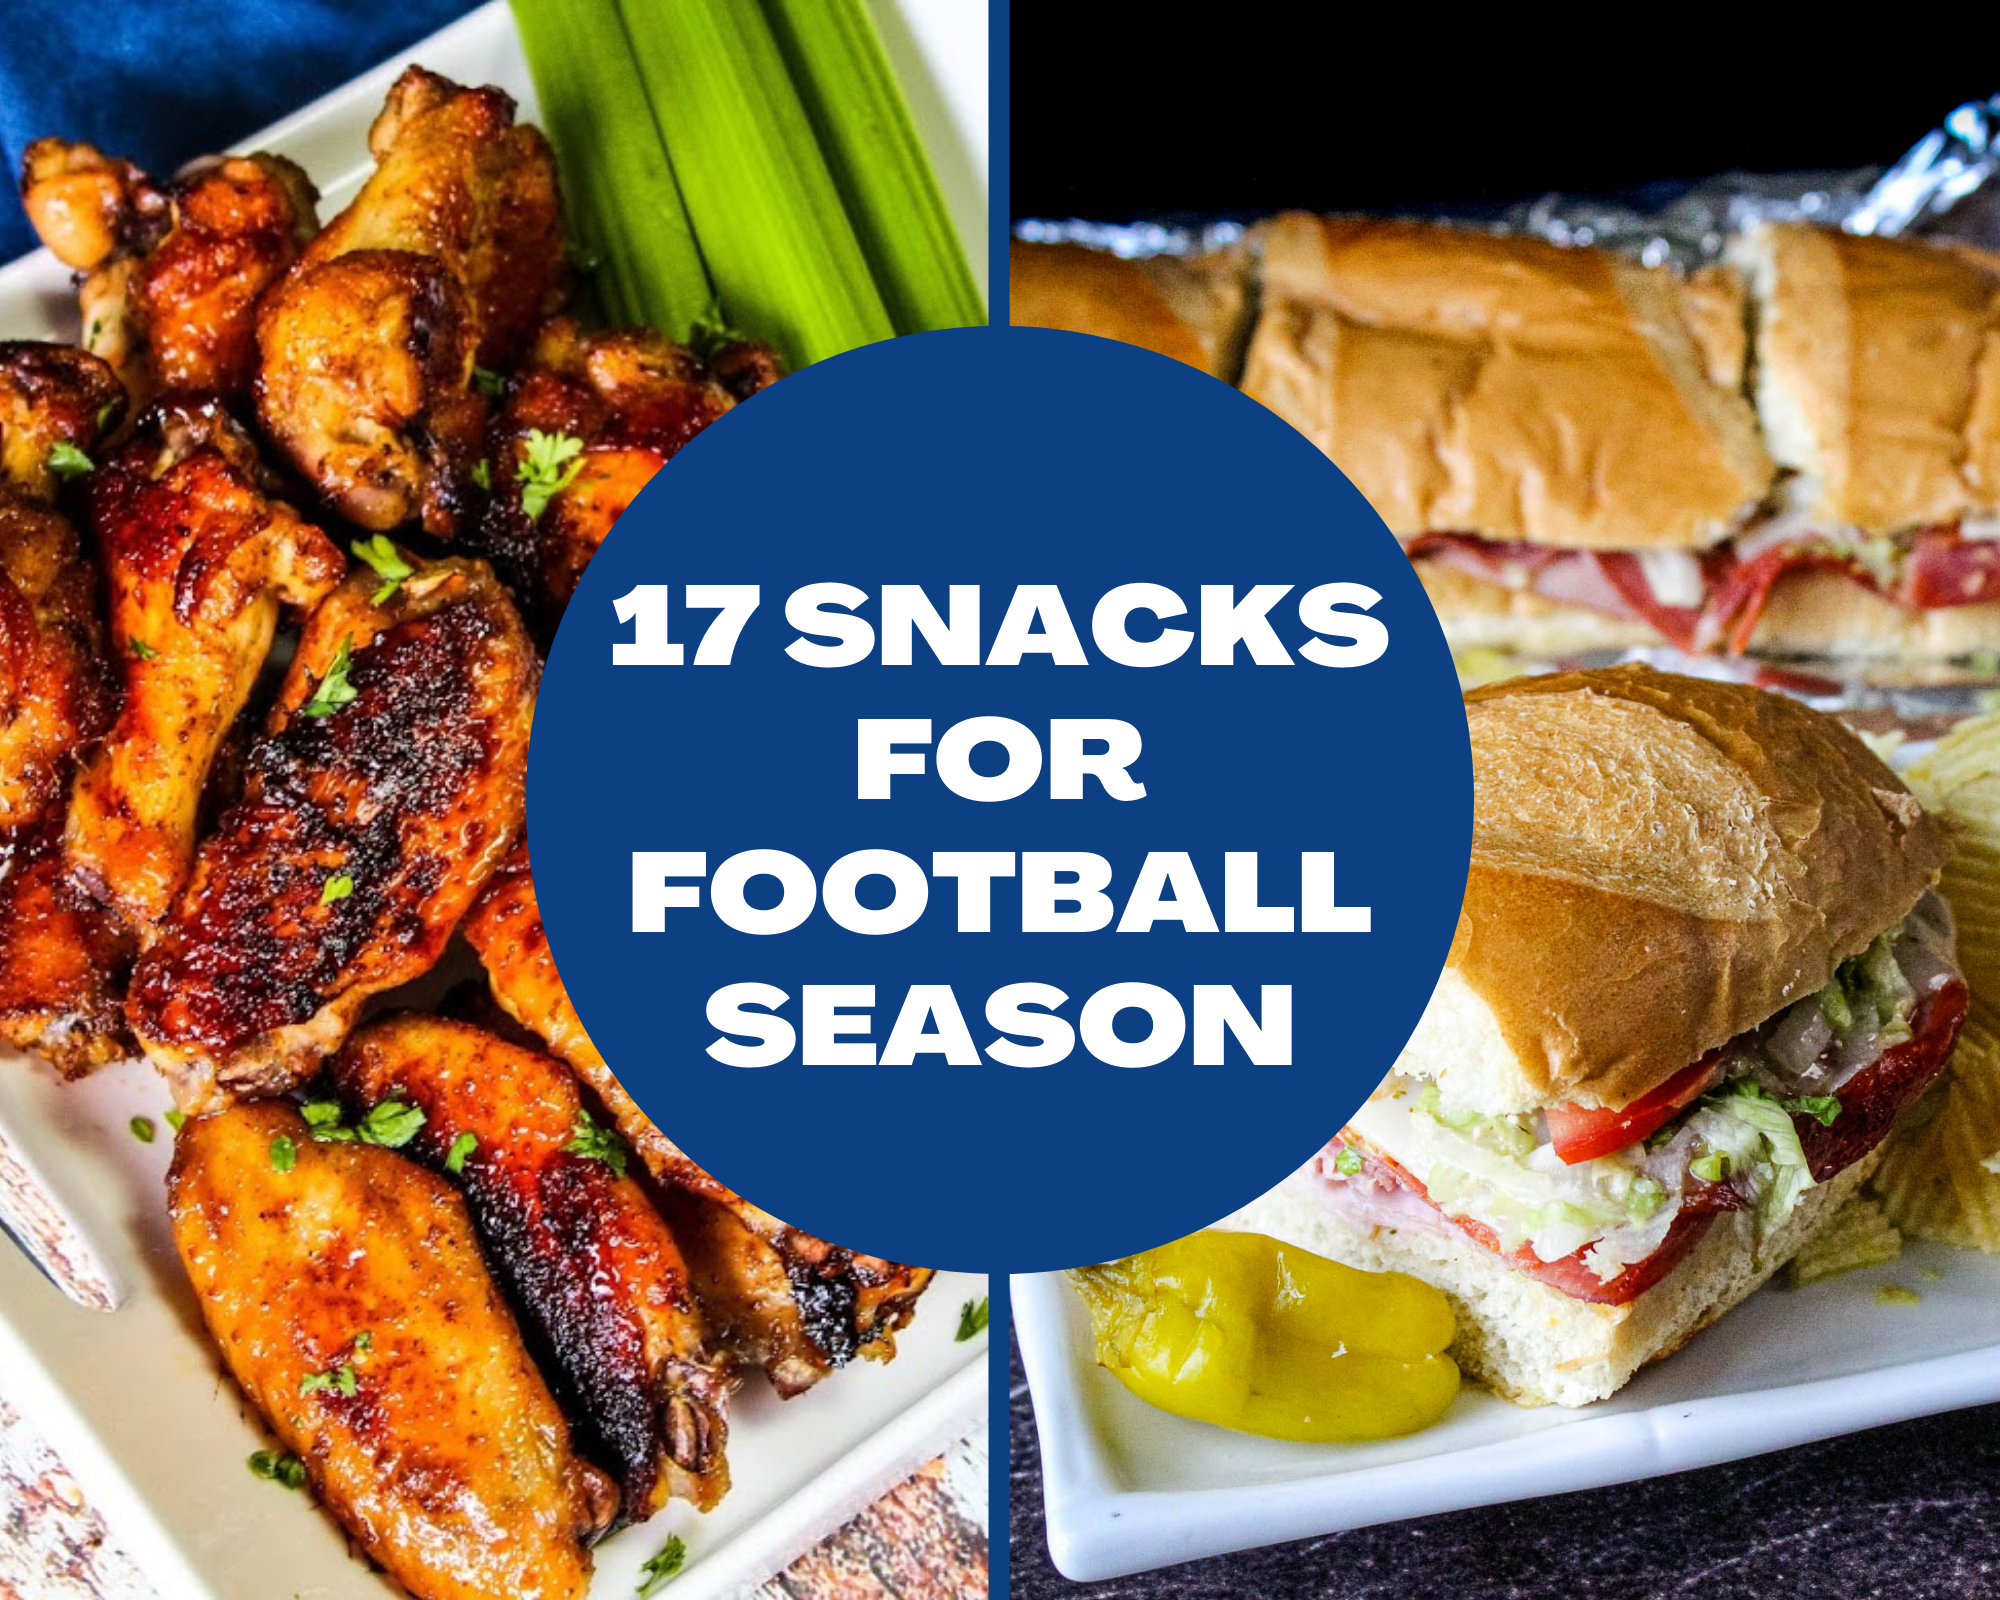 Chicken wings, hot hero sandwiches and more football foods!